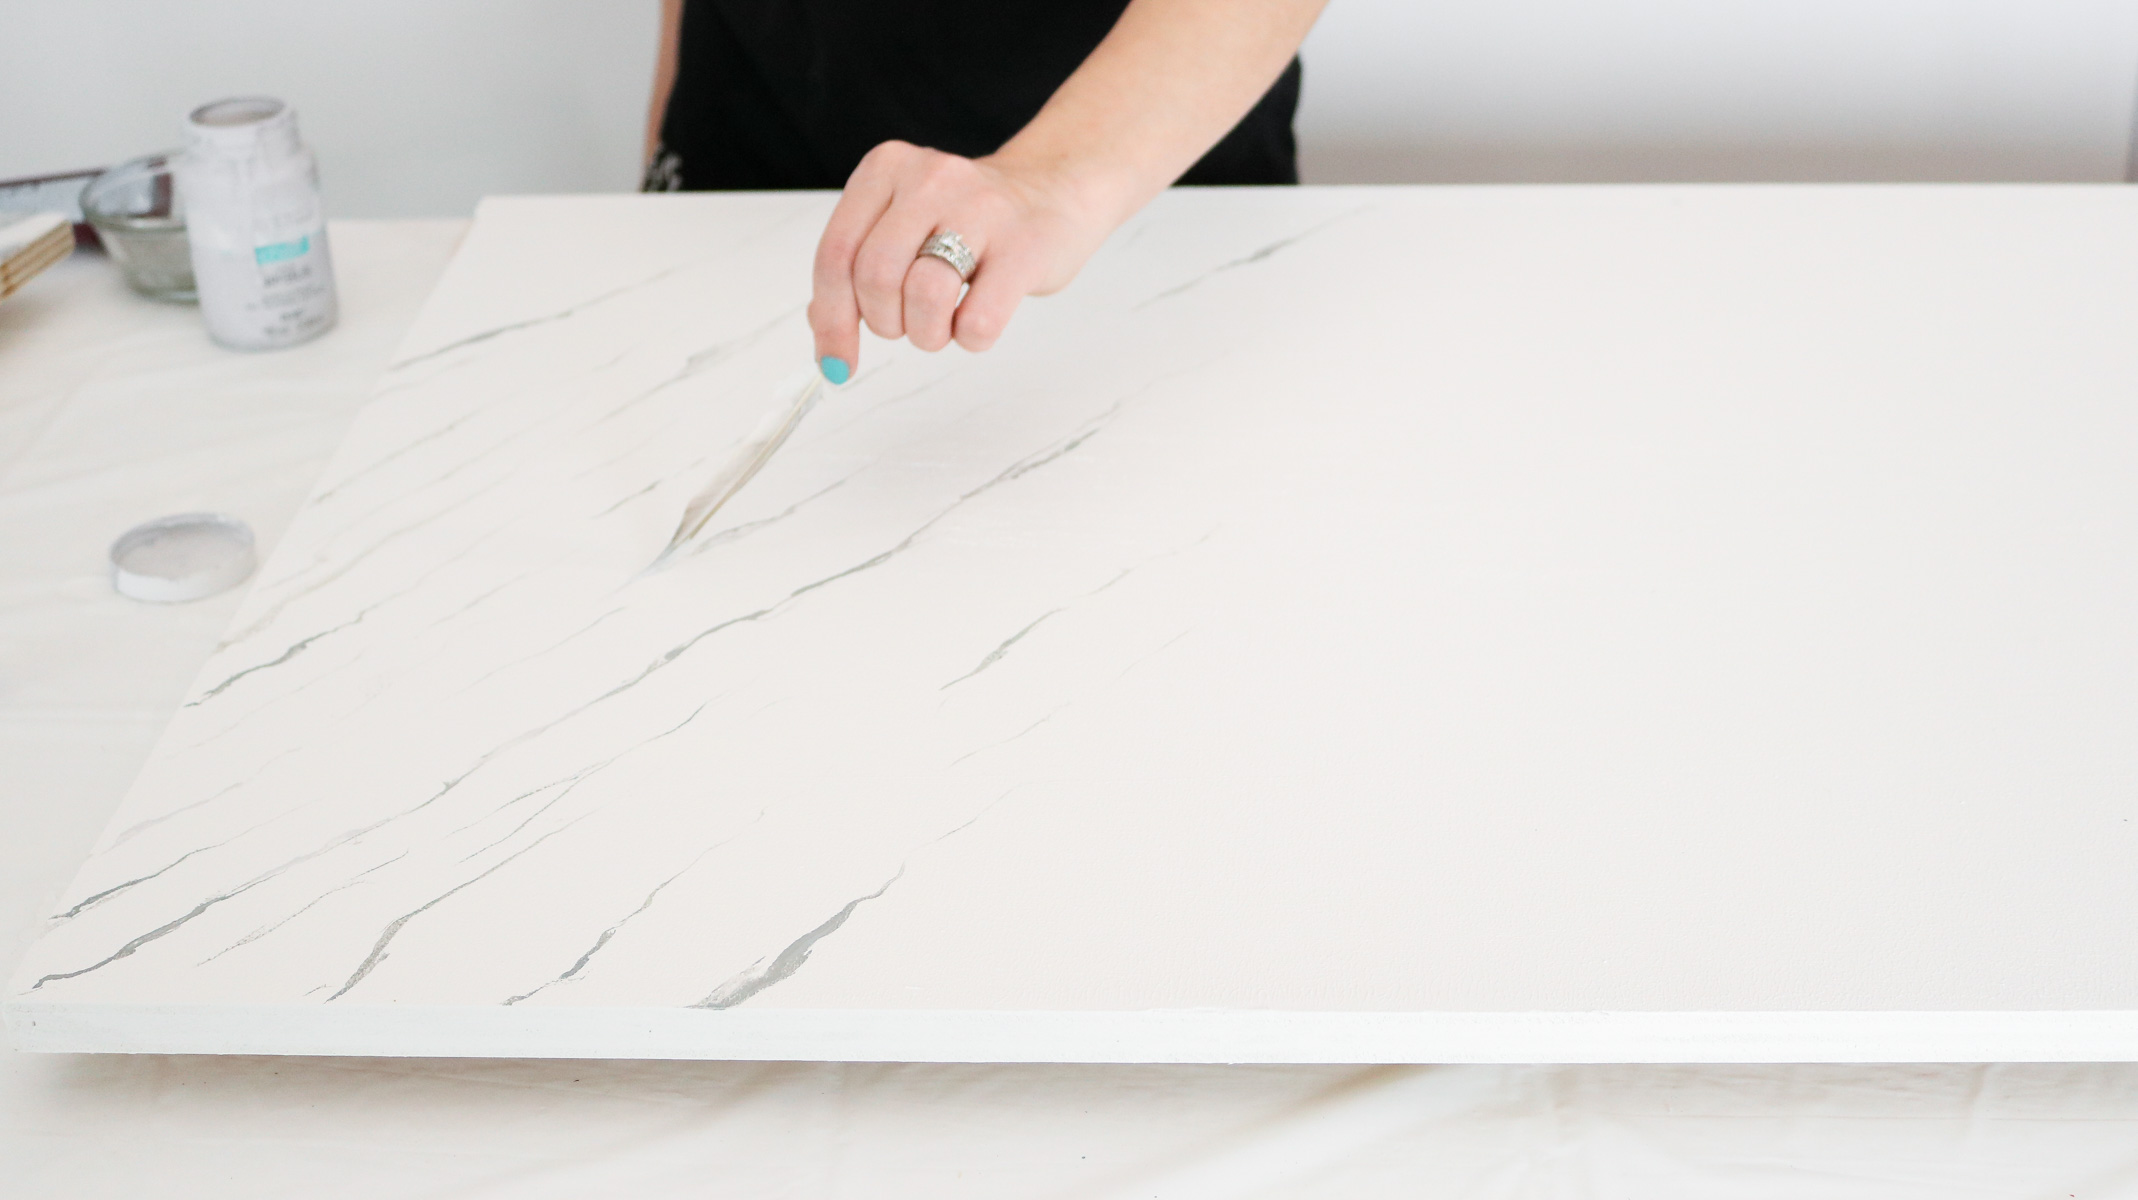 painting on the veinging for the DIY Marble Resin Countertop